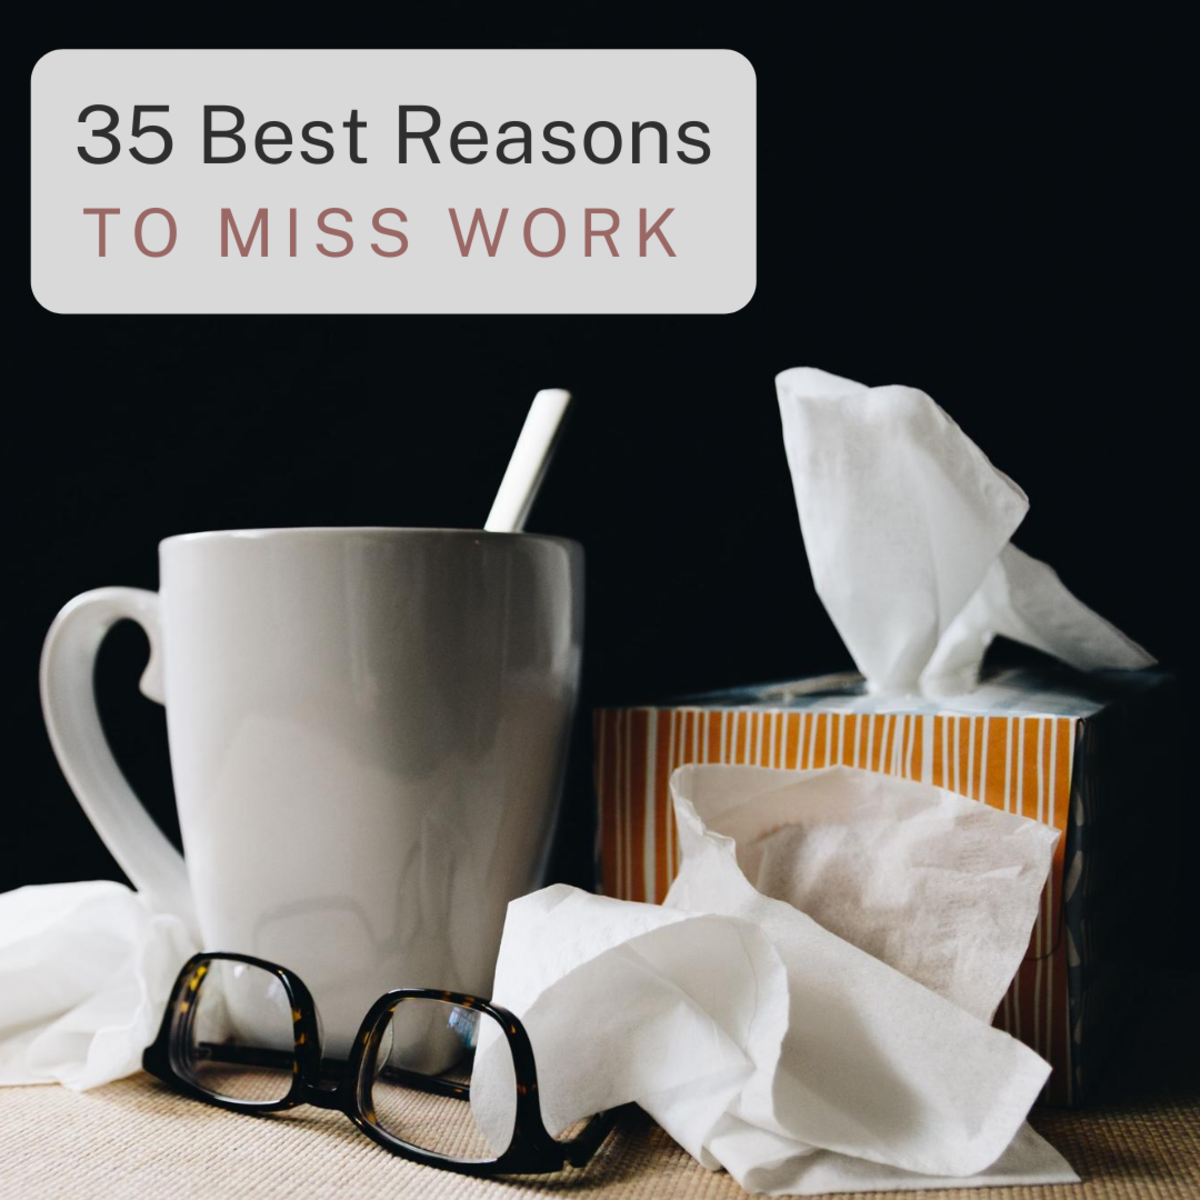 35 Best Reasons to Miss Work